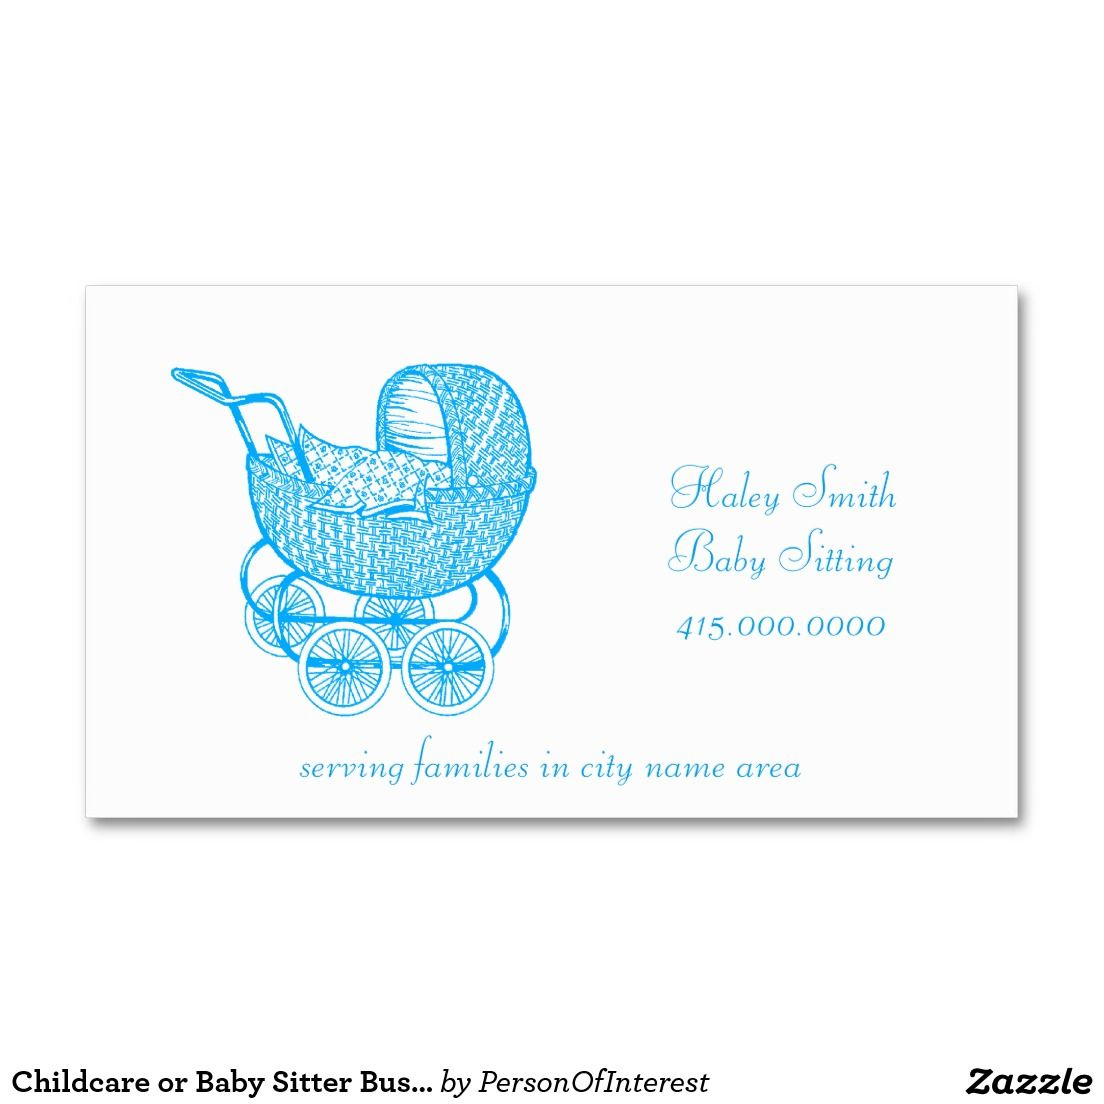 Childcare or Baby Sitter Business Cards | Business Cards & Profile ...